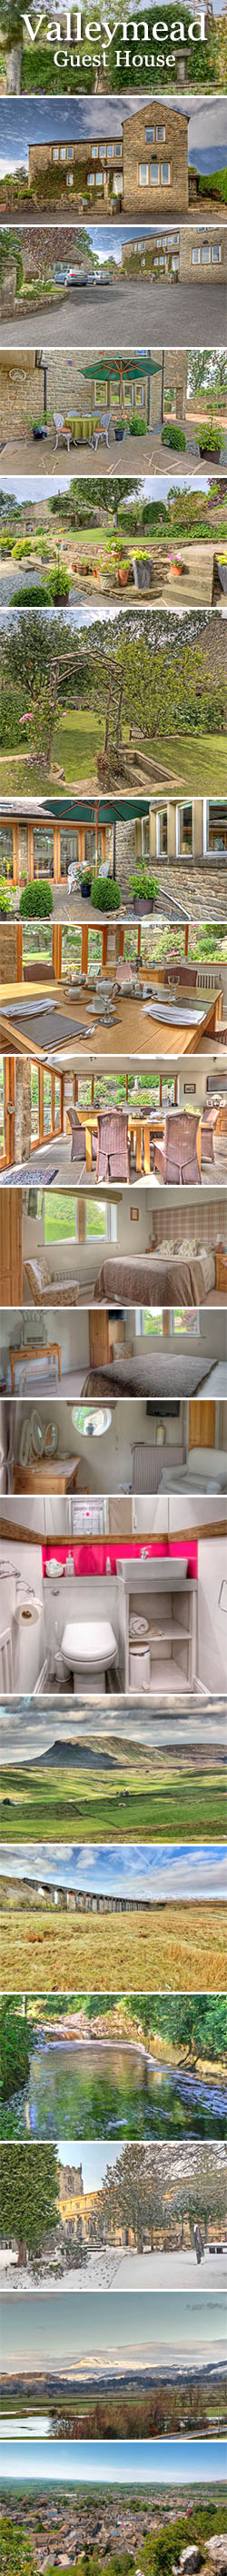 Valleymead Guest House | Giggleswick